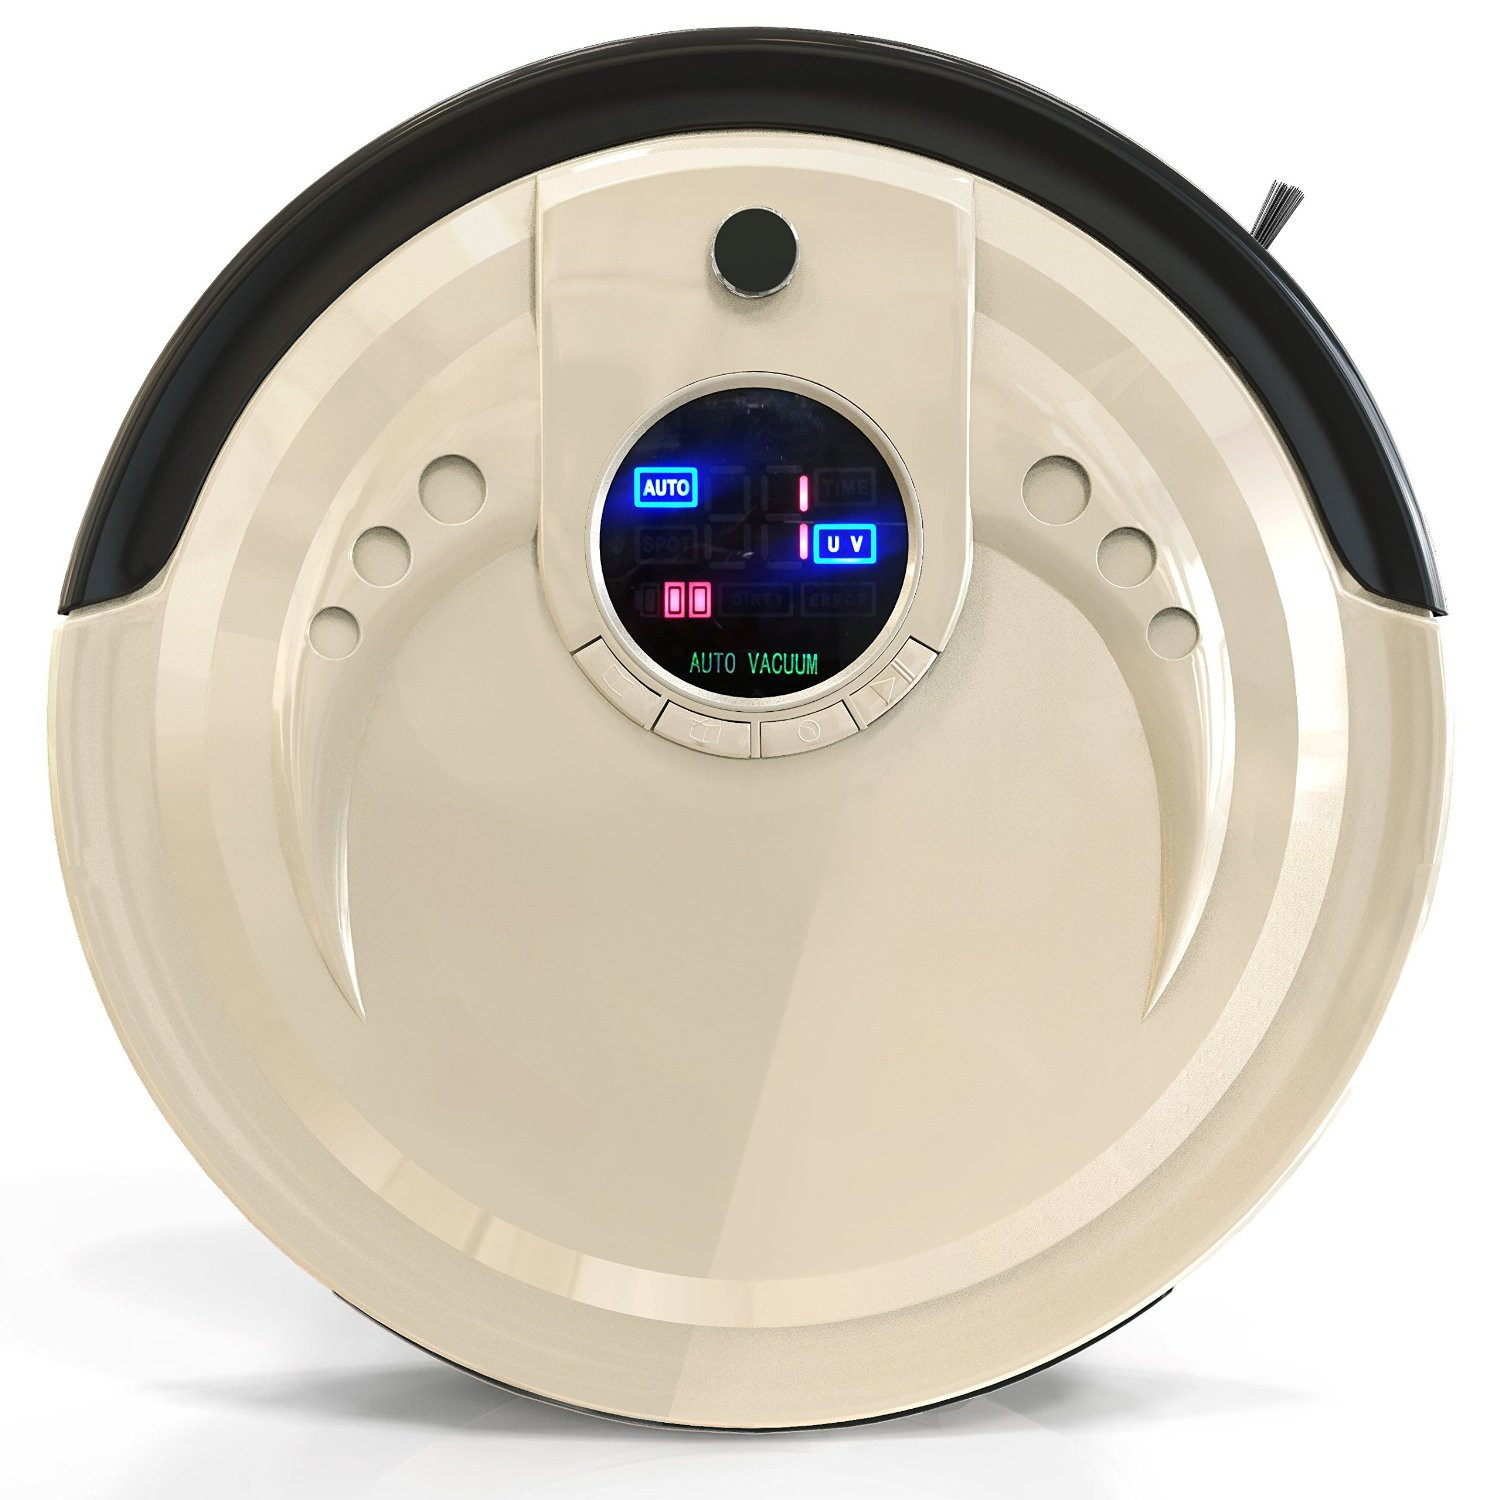 Top Vacuums for Hardwood Floors Of top 10 Best Robotic Vacuums 2019 Cleaning Mopping Robot Reviews with Regard to Bobsweep Standard Robotic Vacuum Cleaner and Mop Best Robotic Vacuums